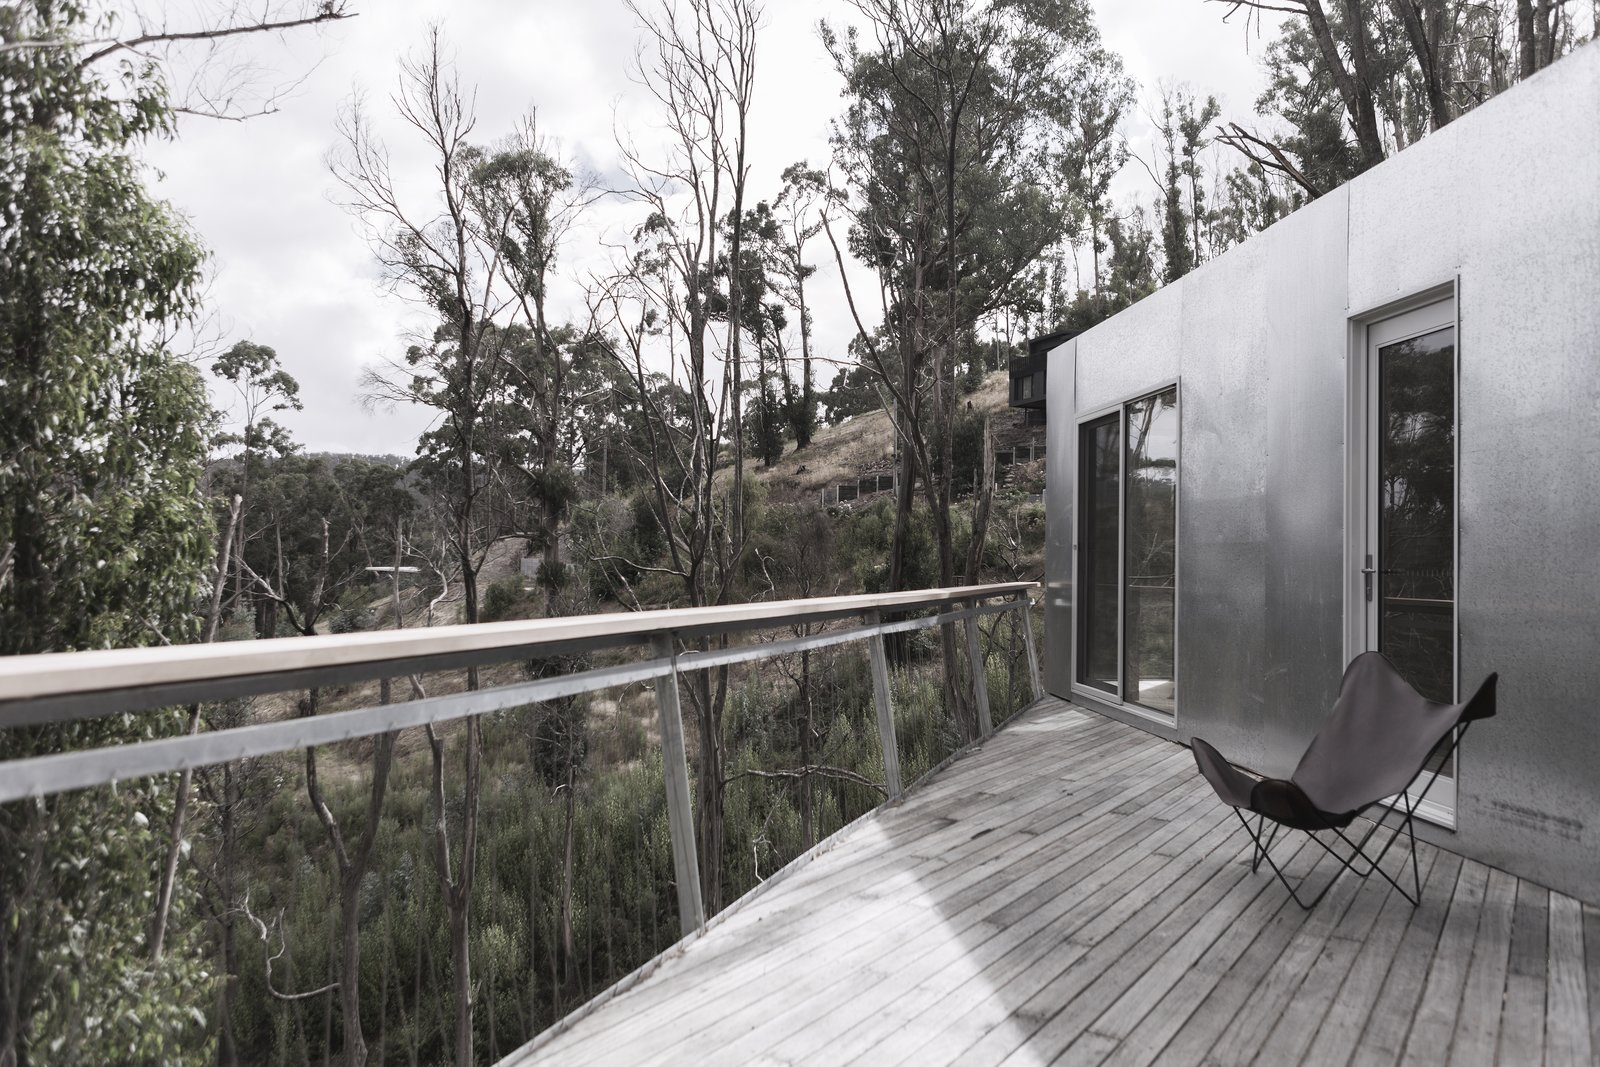 Best Kitchen Gallery: Photo 7 Of 8 In This Off Grid Container Home In Australia Disappears of Off The Grid Container Homes on rachelxblog.com